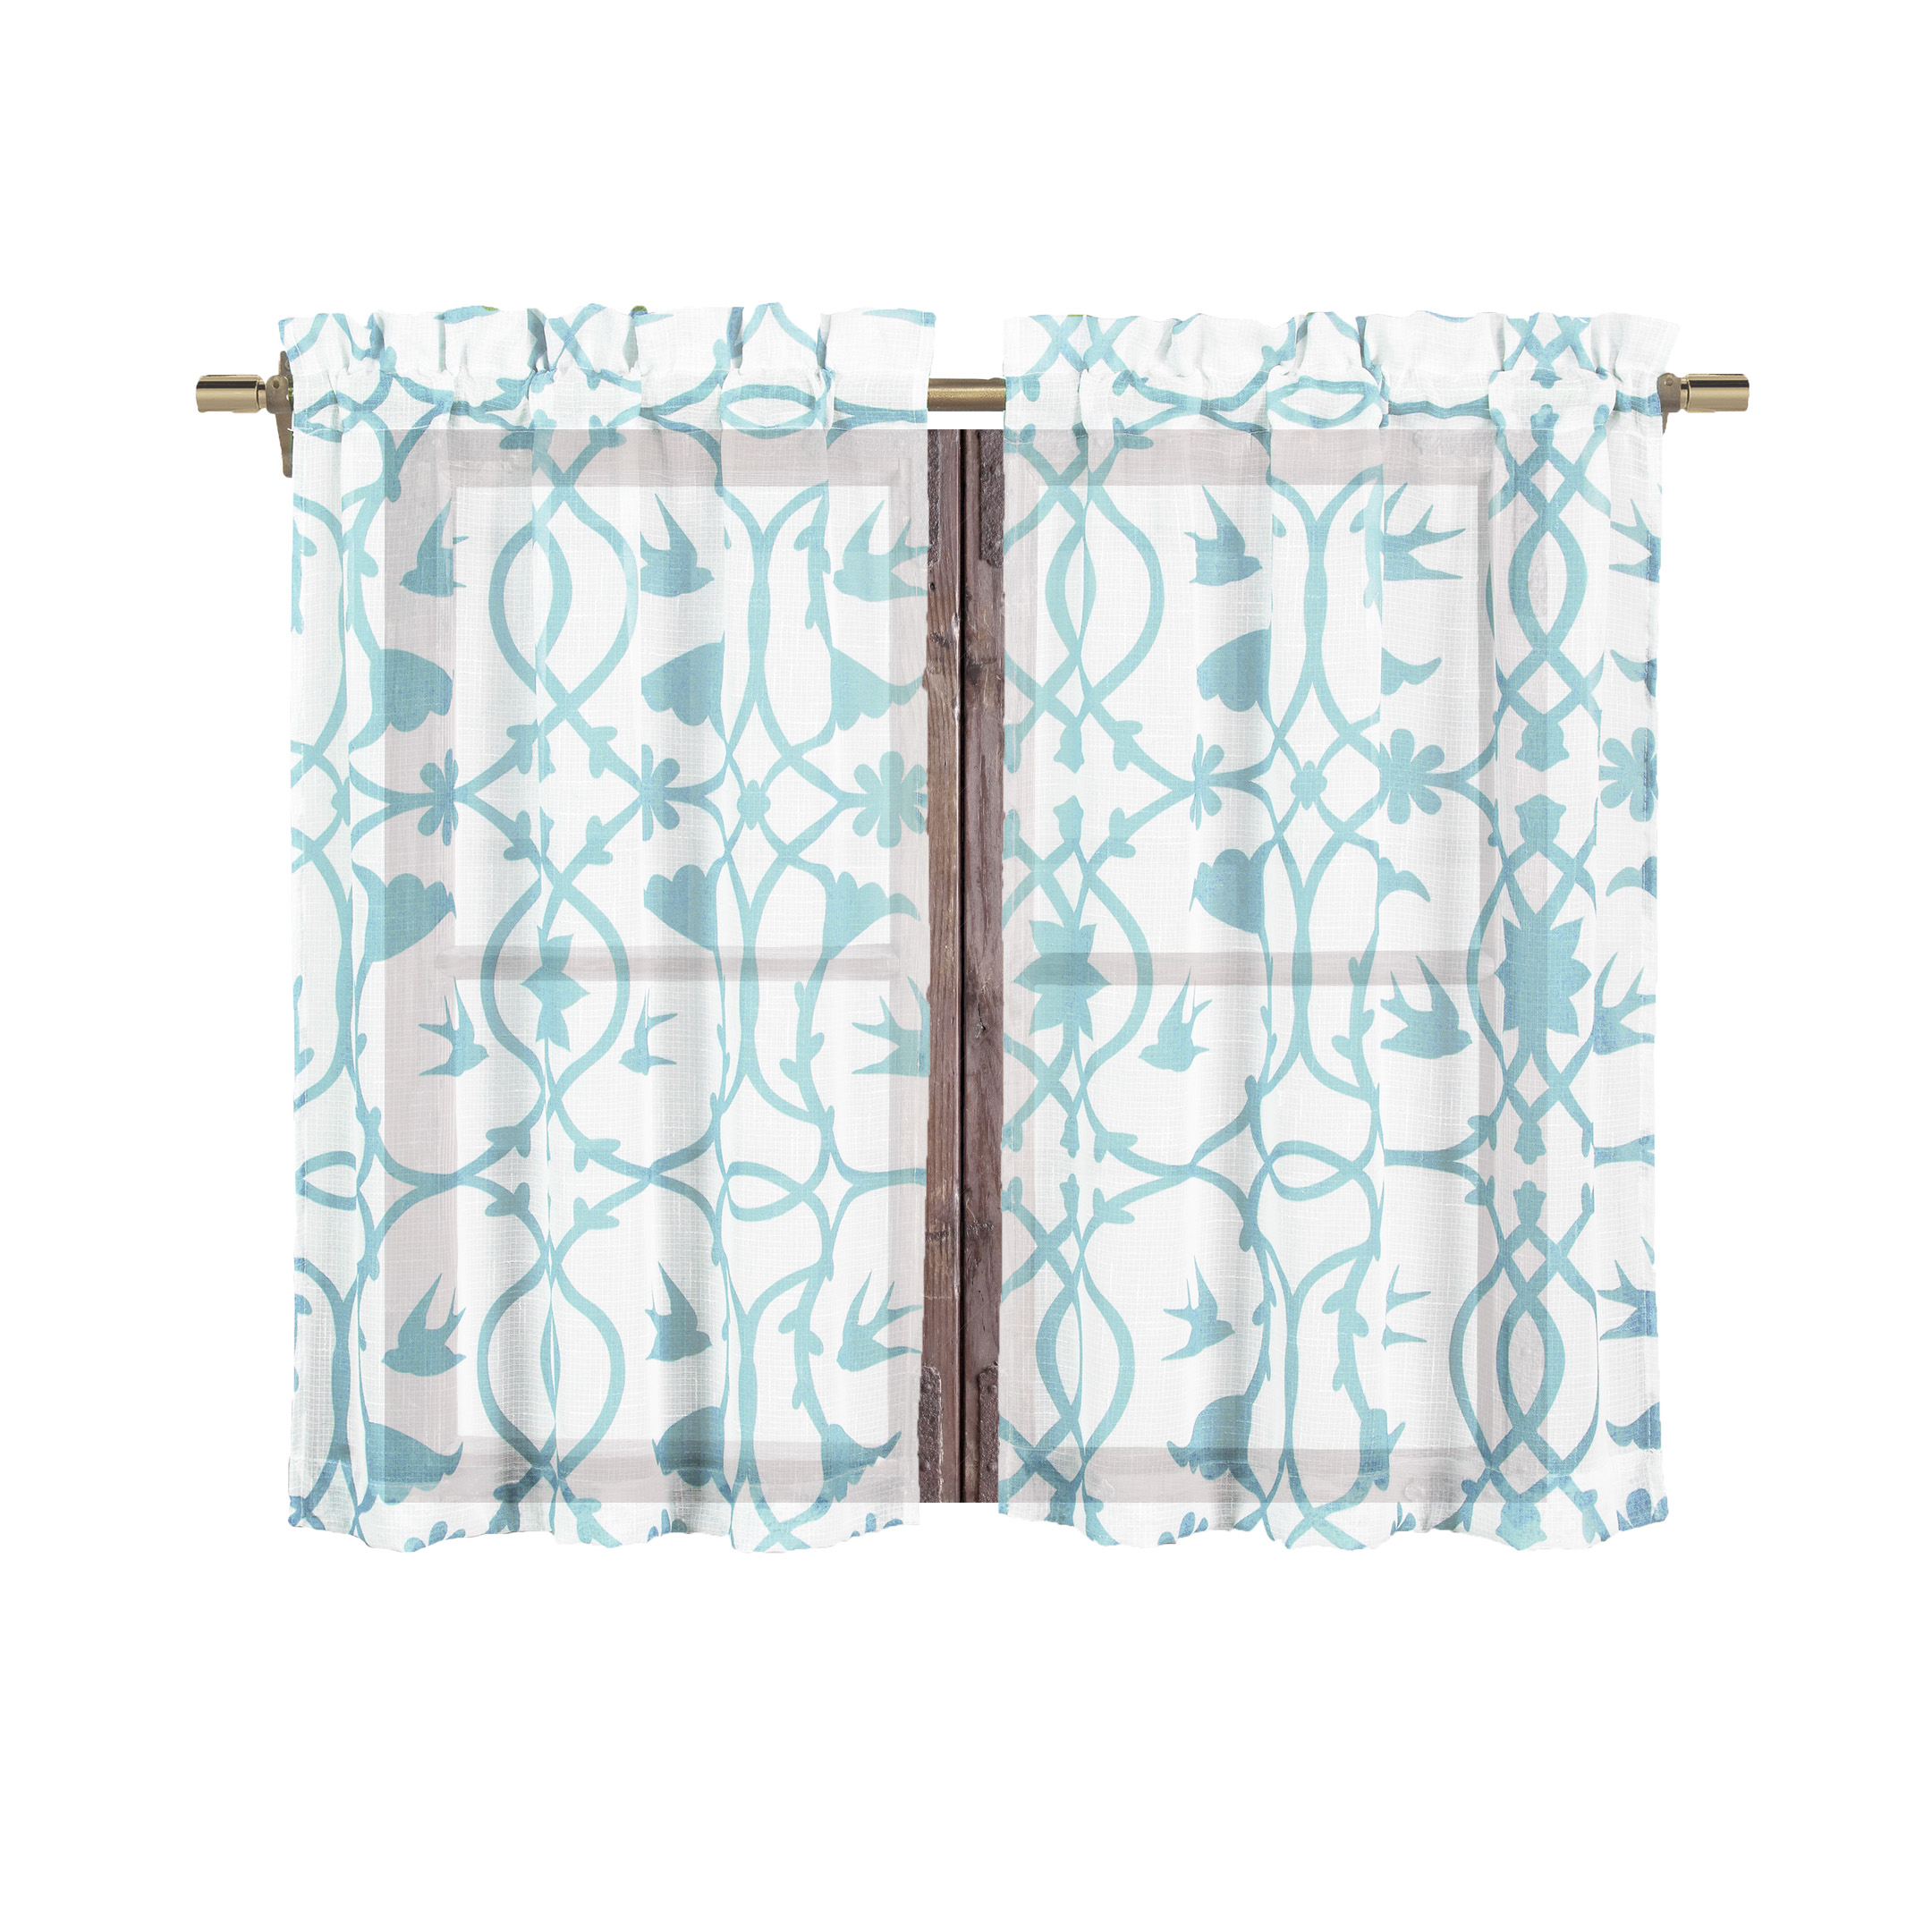 Bathroom and More Collection 2 Piece SHEER Window Curtain Tier Set White with Blue Bird, Flower & Vine Design: Tiers Size 24in Long